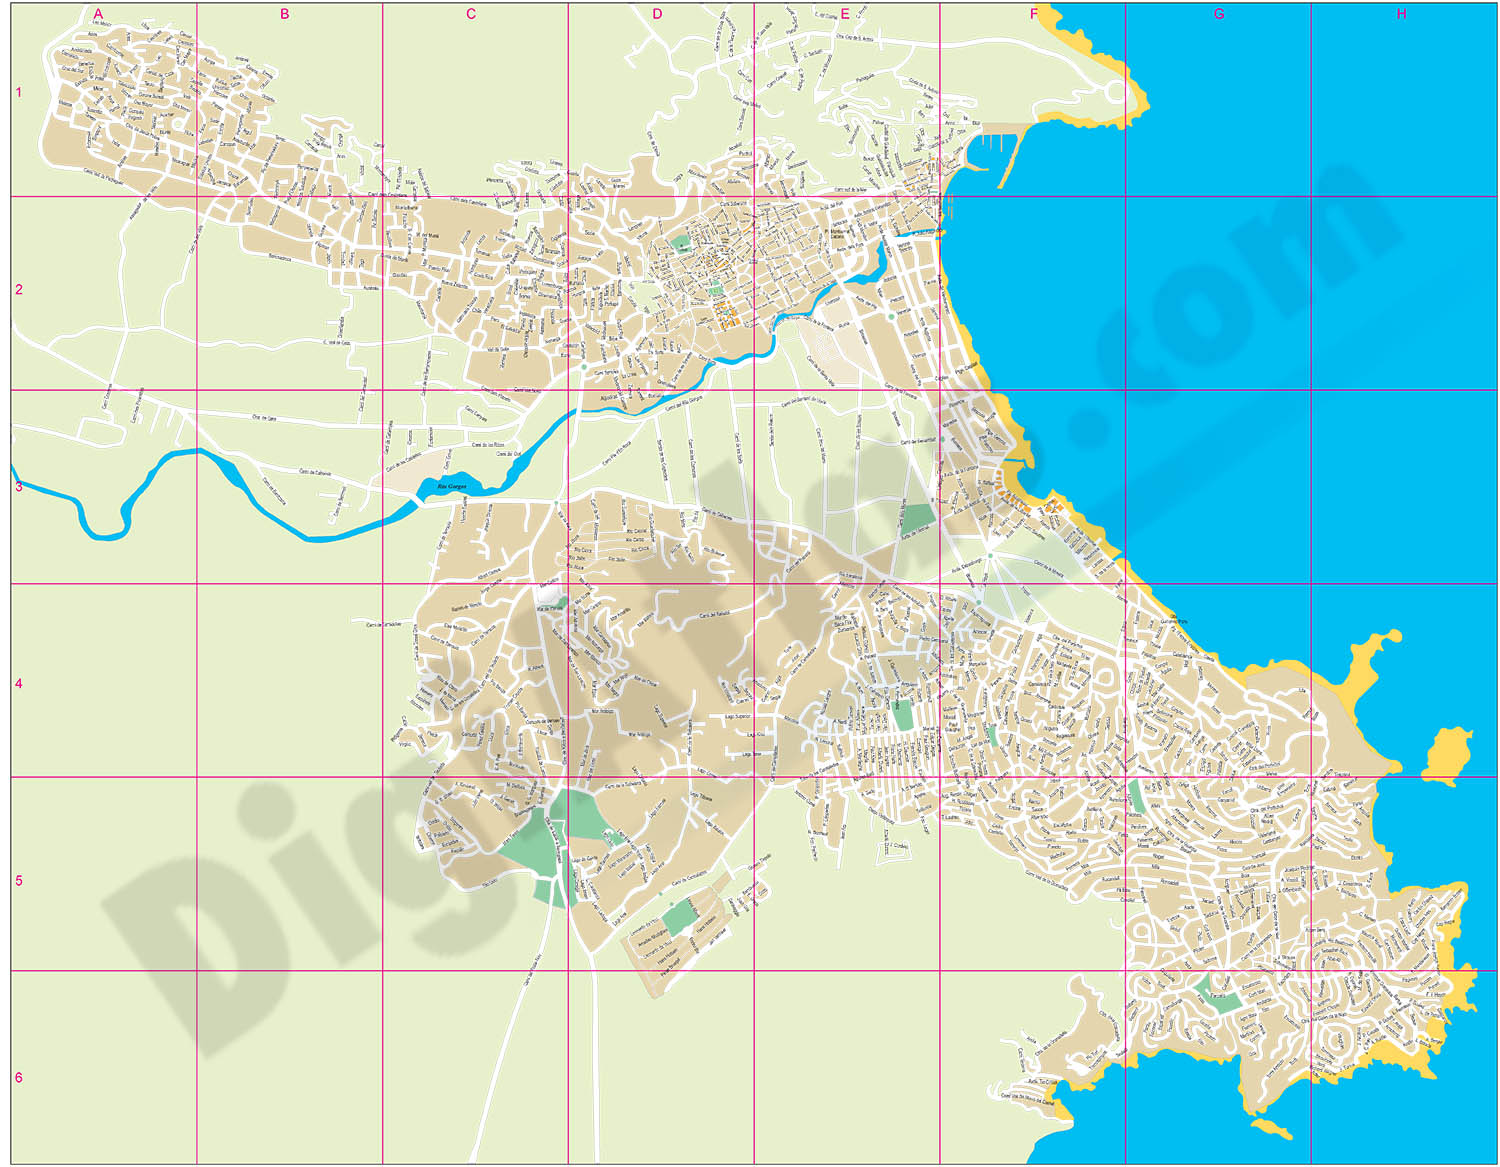 Javea - Xabia - city map